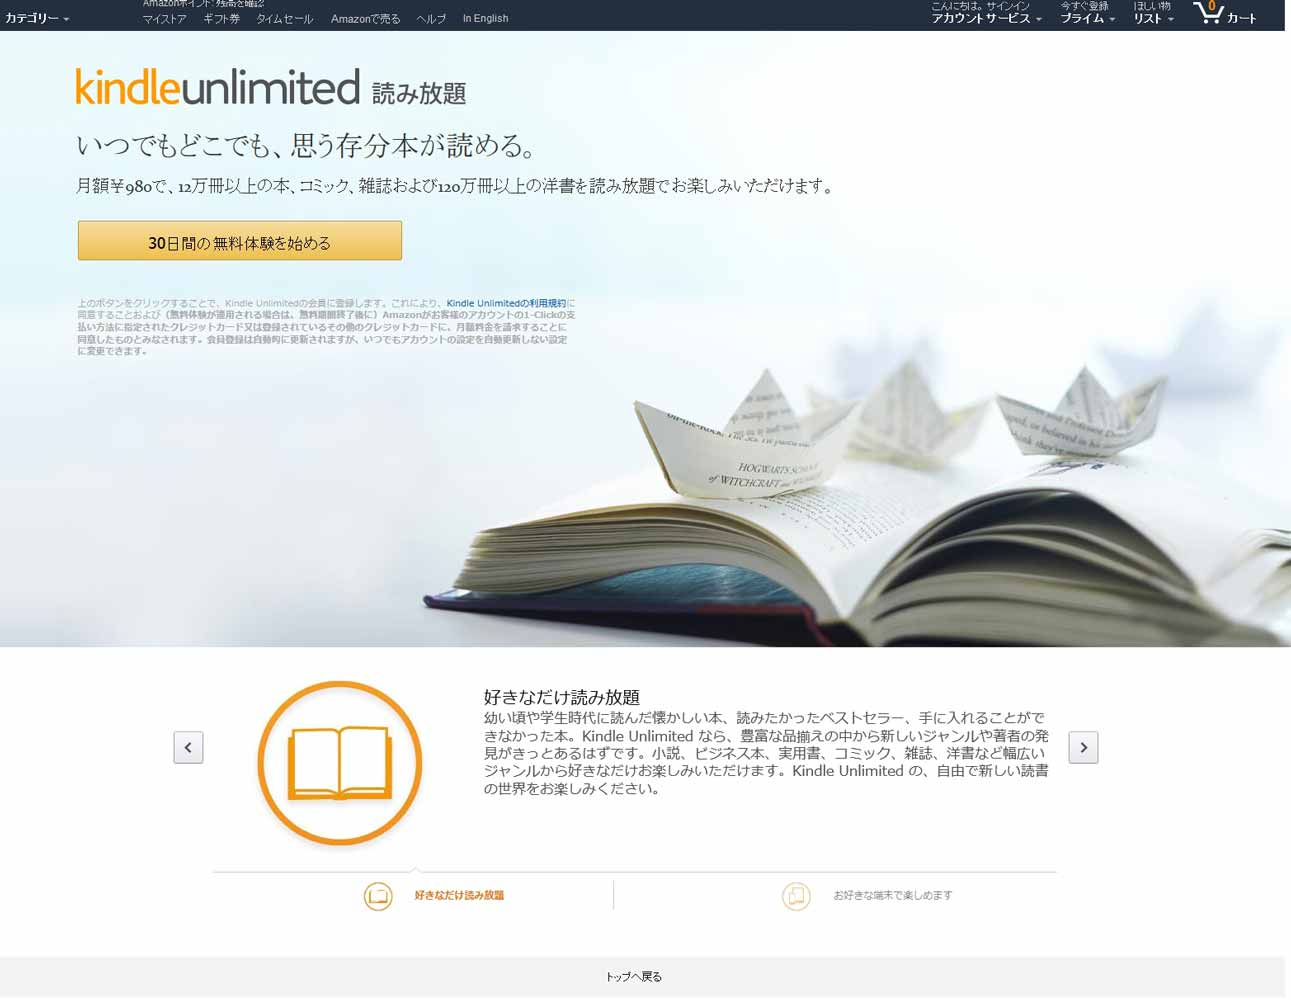 Amazon、日本で定額読み放題サービス「Kindle Unlimited」の提供を開始 - 月額980円